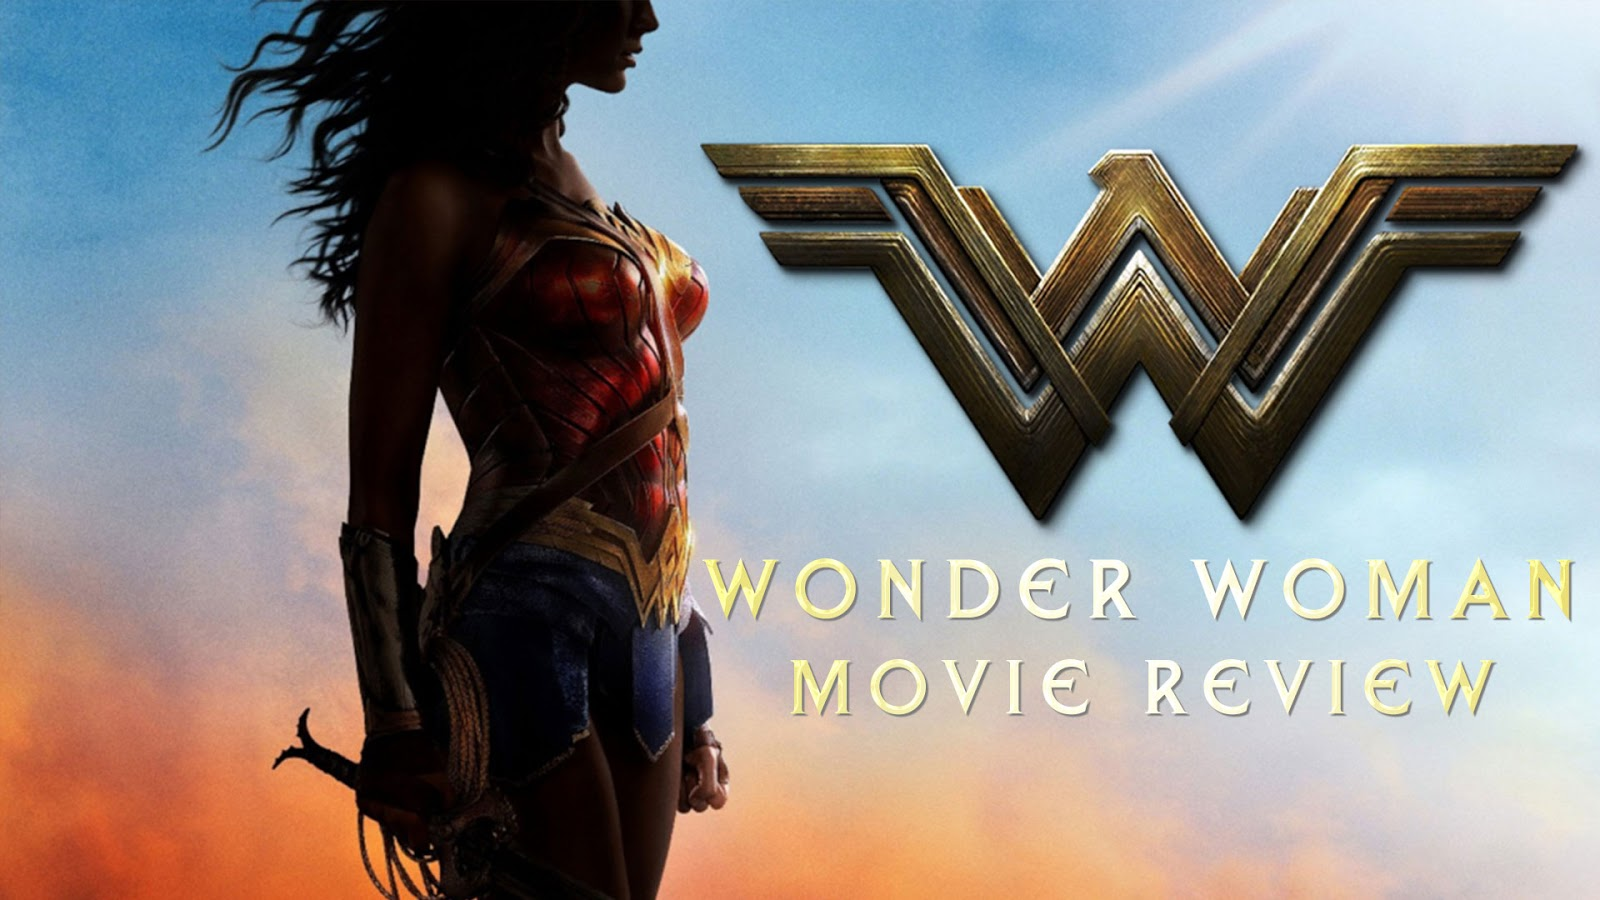 movie review Wonder Woman podcast